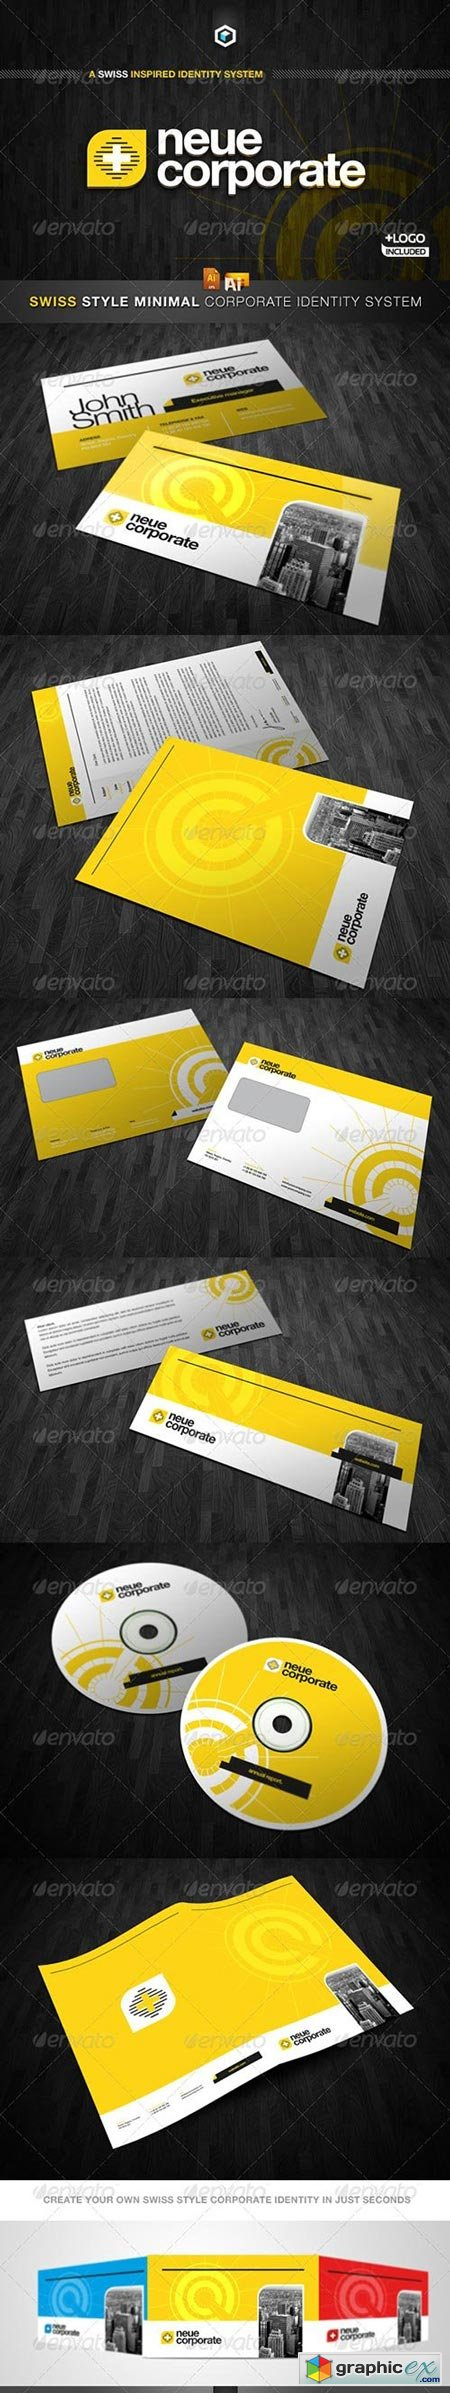 RW Swiss Style Modern Corporate Identity And Logo 2331247